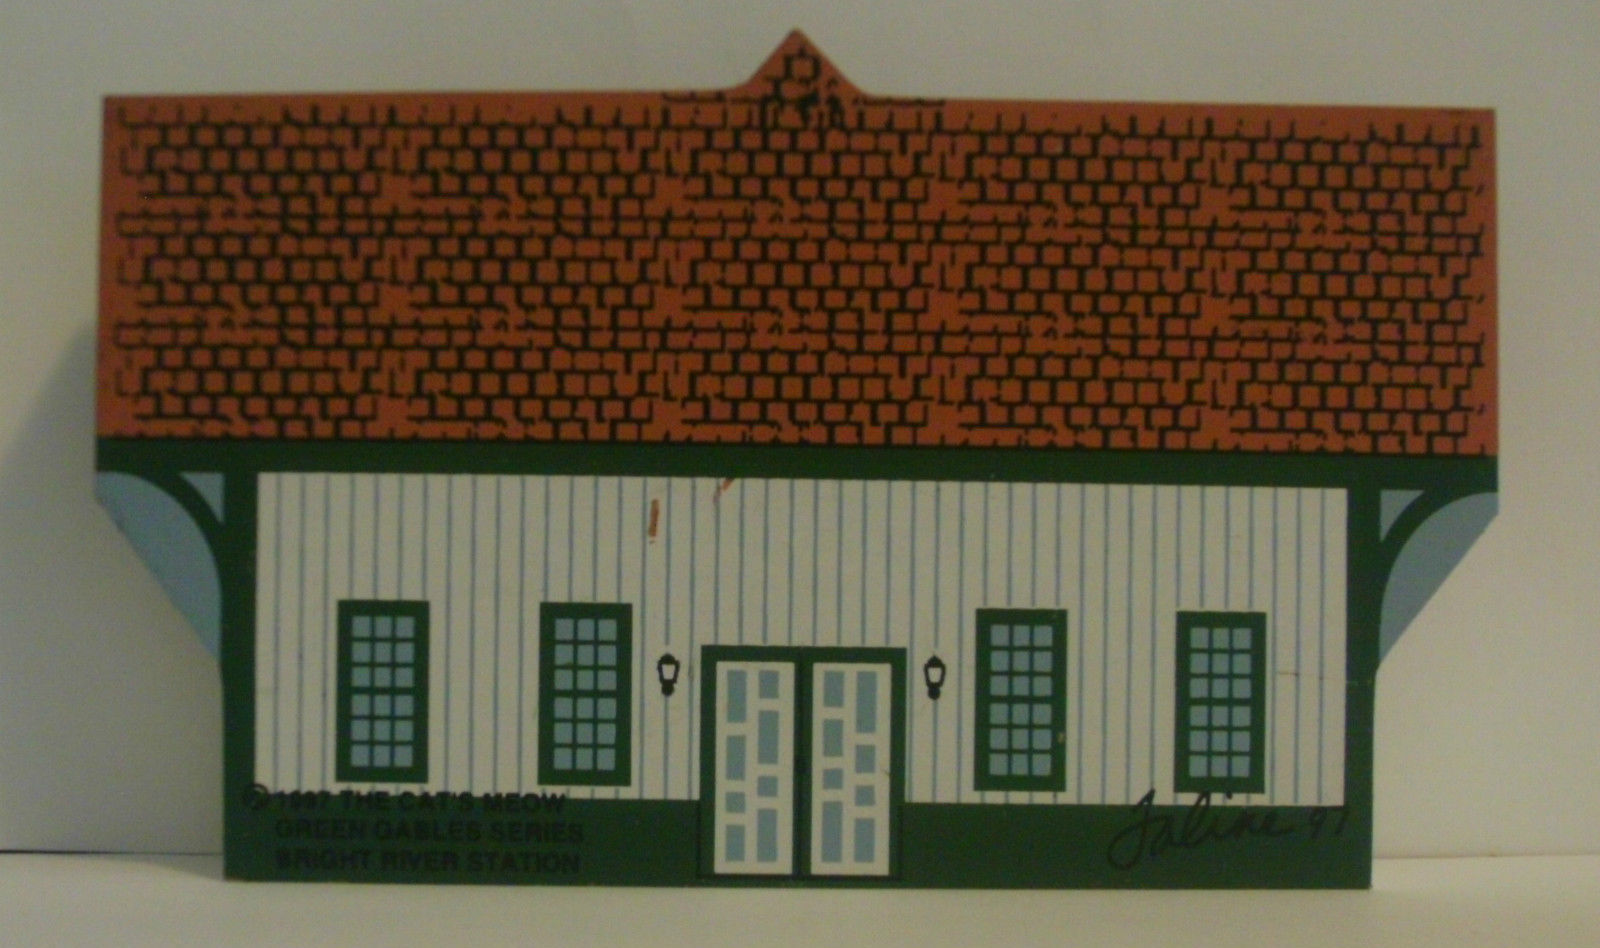 Cats Meow 1997 Green Gables Series Bright River Station image 2